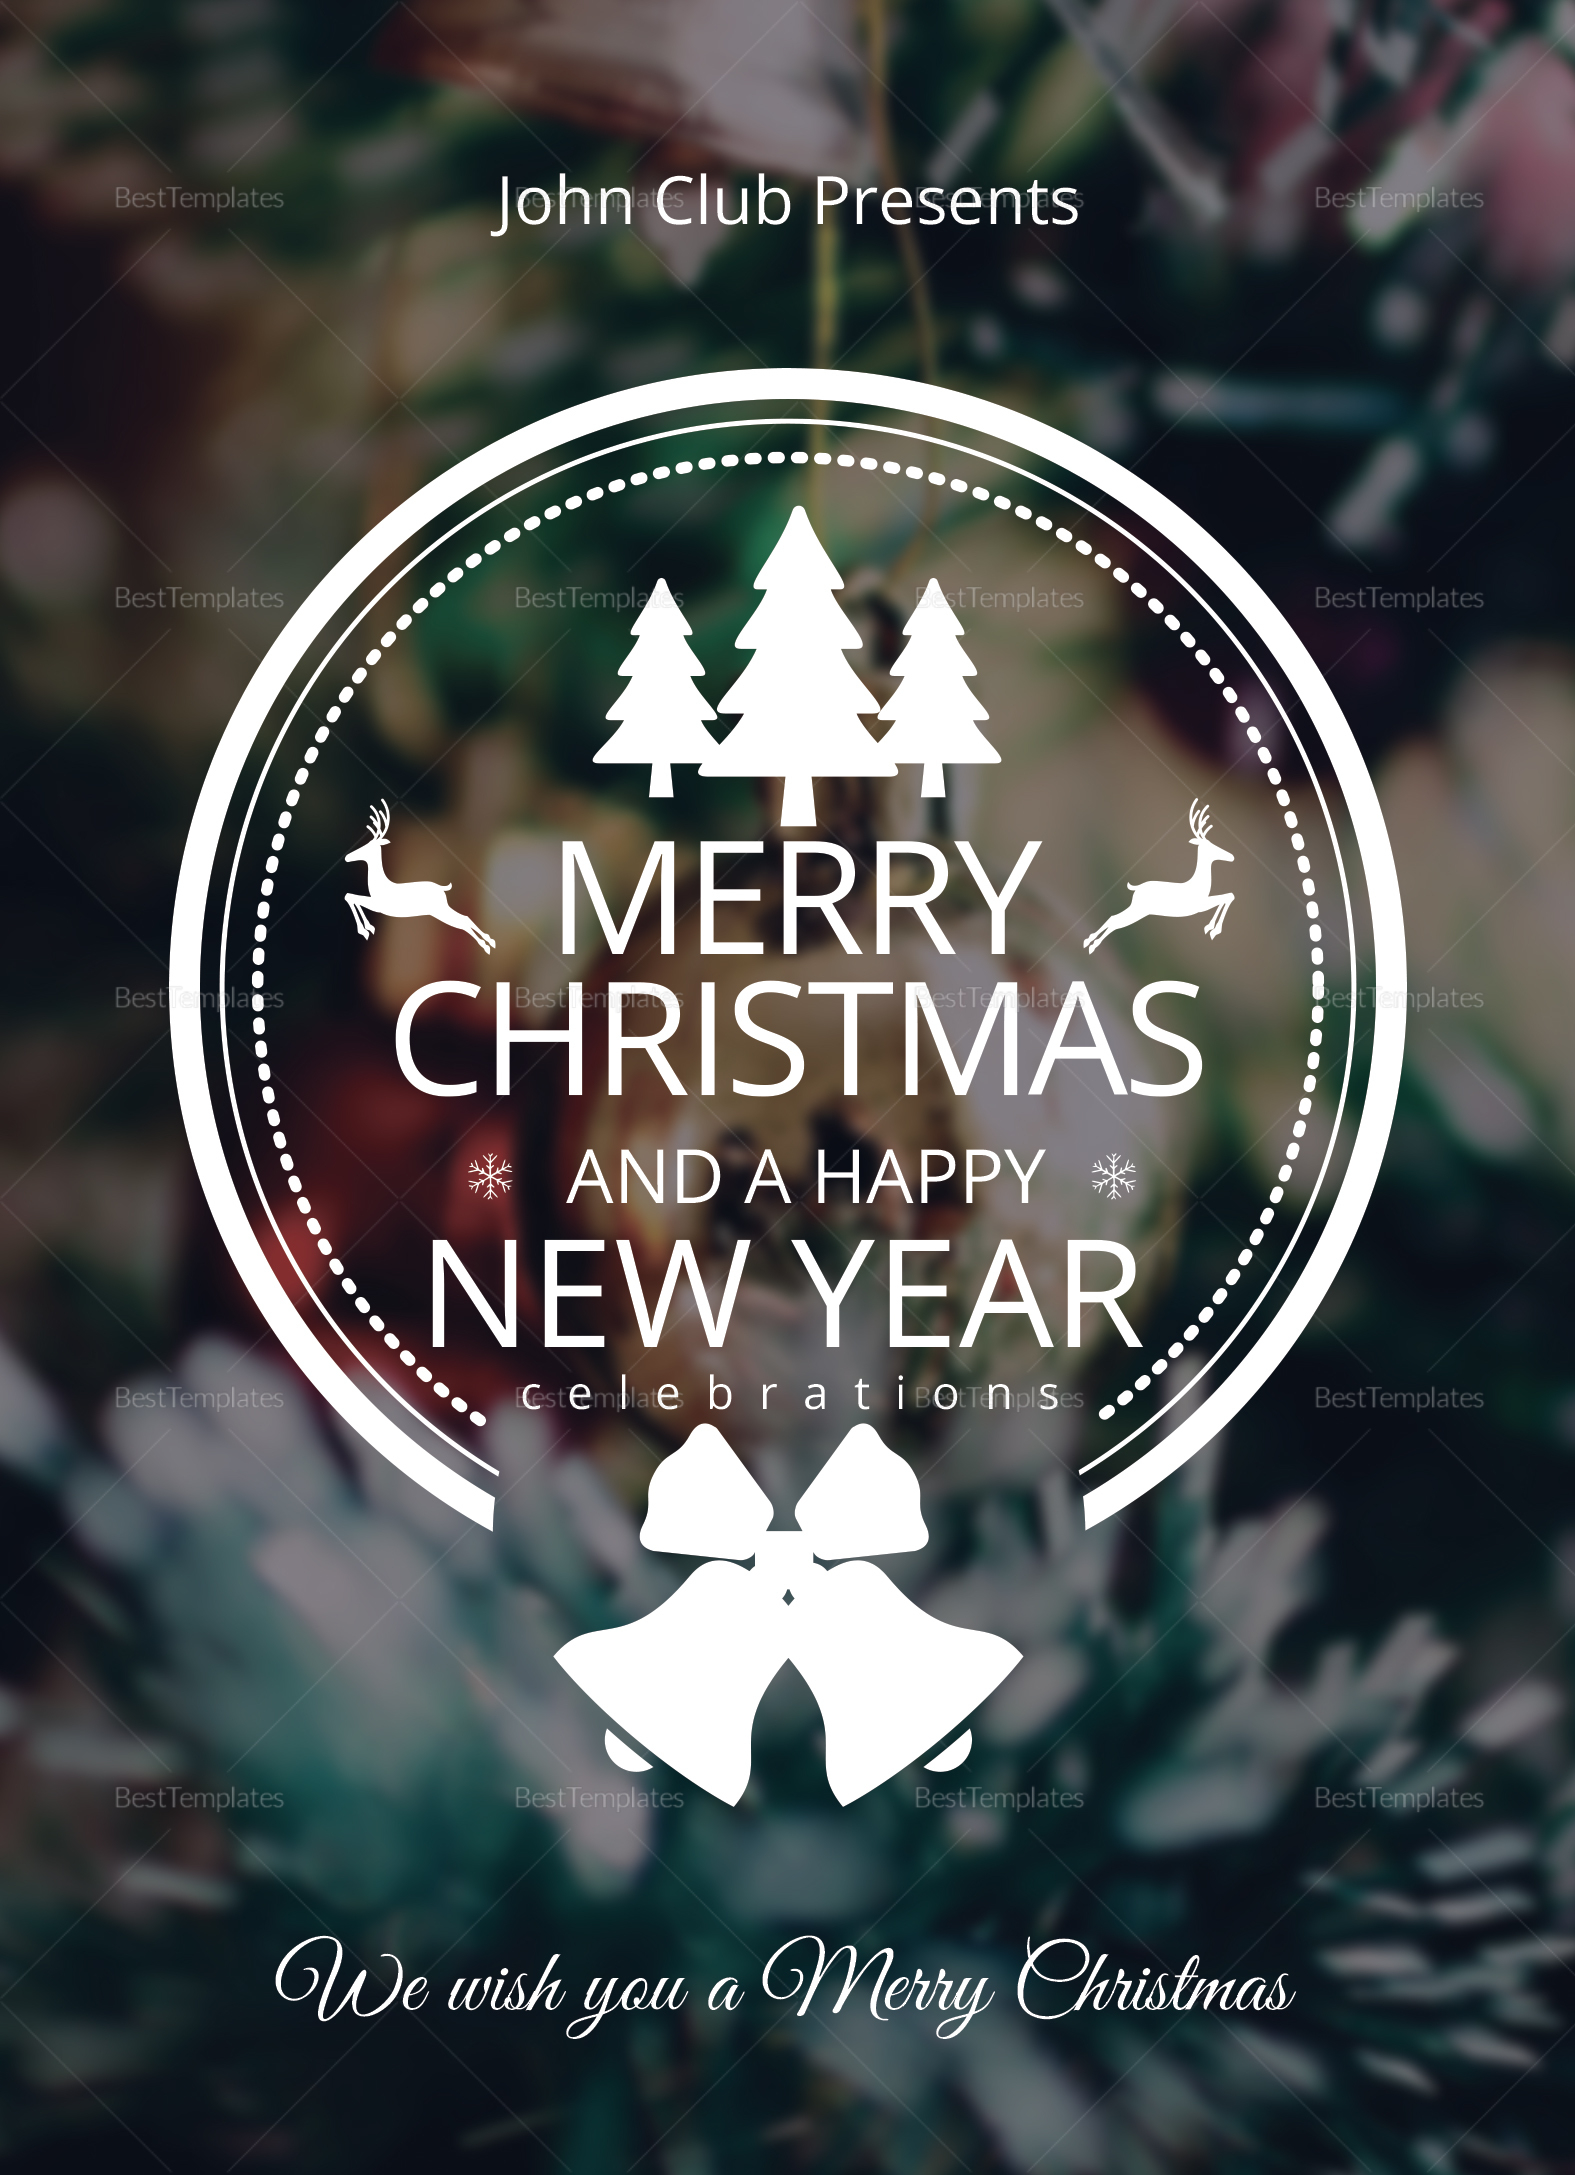 Frost Christmas Greeting Card Template in Adobe Photoshop